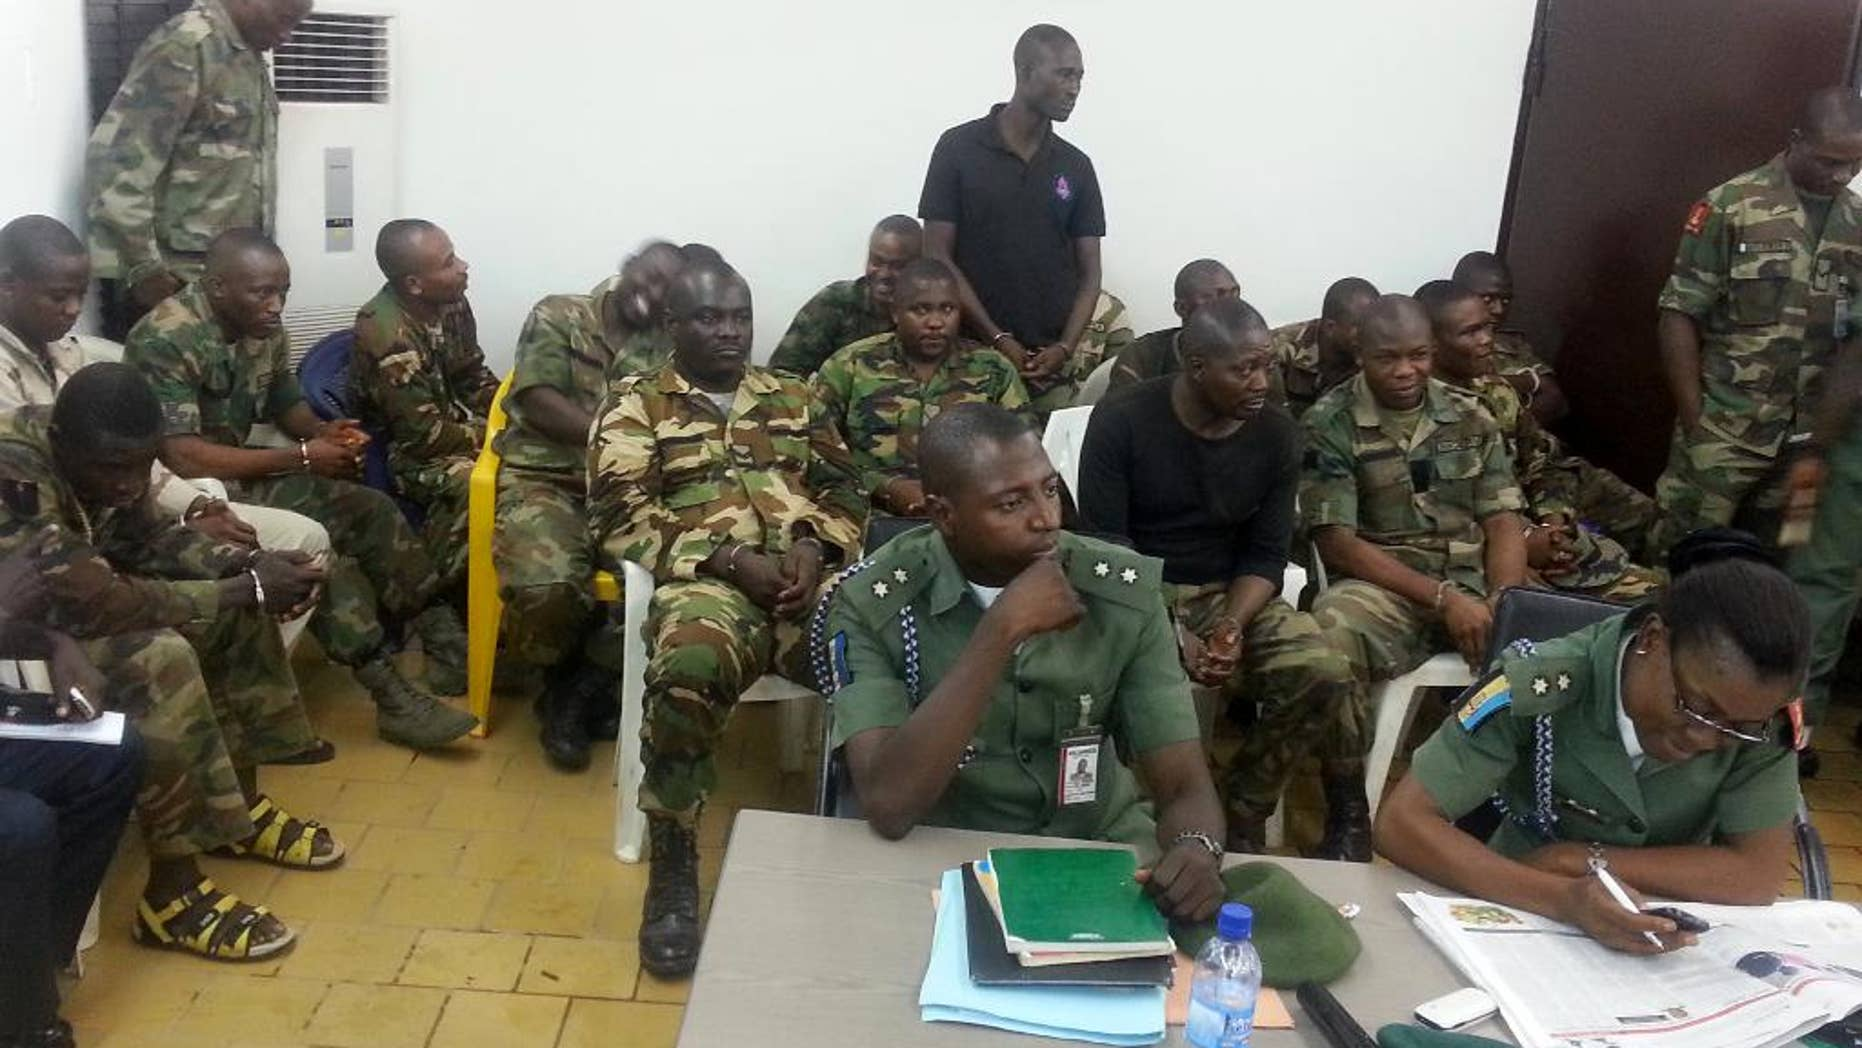 In this photo taken with a mobile phone Tuesday, Sept. 16. 2014 in Abuja Nigeria. Unidentified military prosecutors sit in the front row, while soldiers accused of an attack on their commander appear before a court martial in Abuja. Twelve soldiers fighting an Islamic insurgency in northeast Nigeria have been sentenced to death by firing squad for mutiny and attempted murder of their commanding officer. In a decision read early Tuesday by Brig. Gen. Chukwuemeka Okonkwo, the military tribunal found 12 soldiers guilty and five others innocent. One was sentenced to 28 days in jail with hard labor. ( AP Photo)